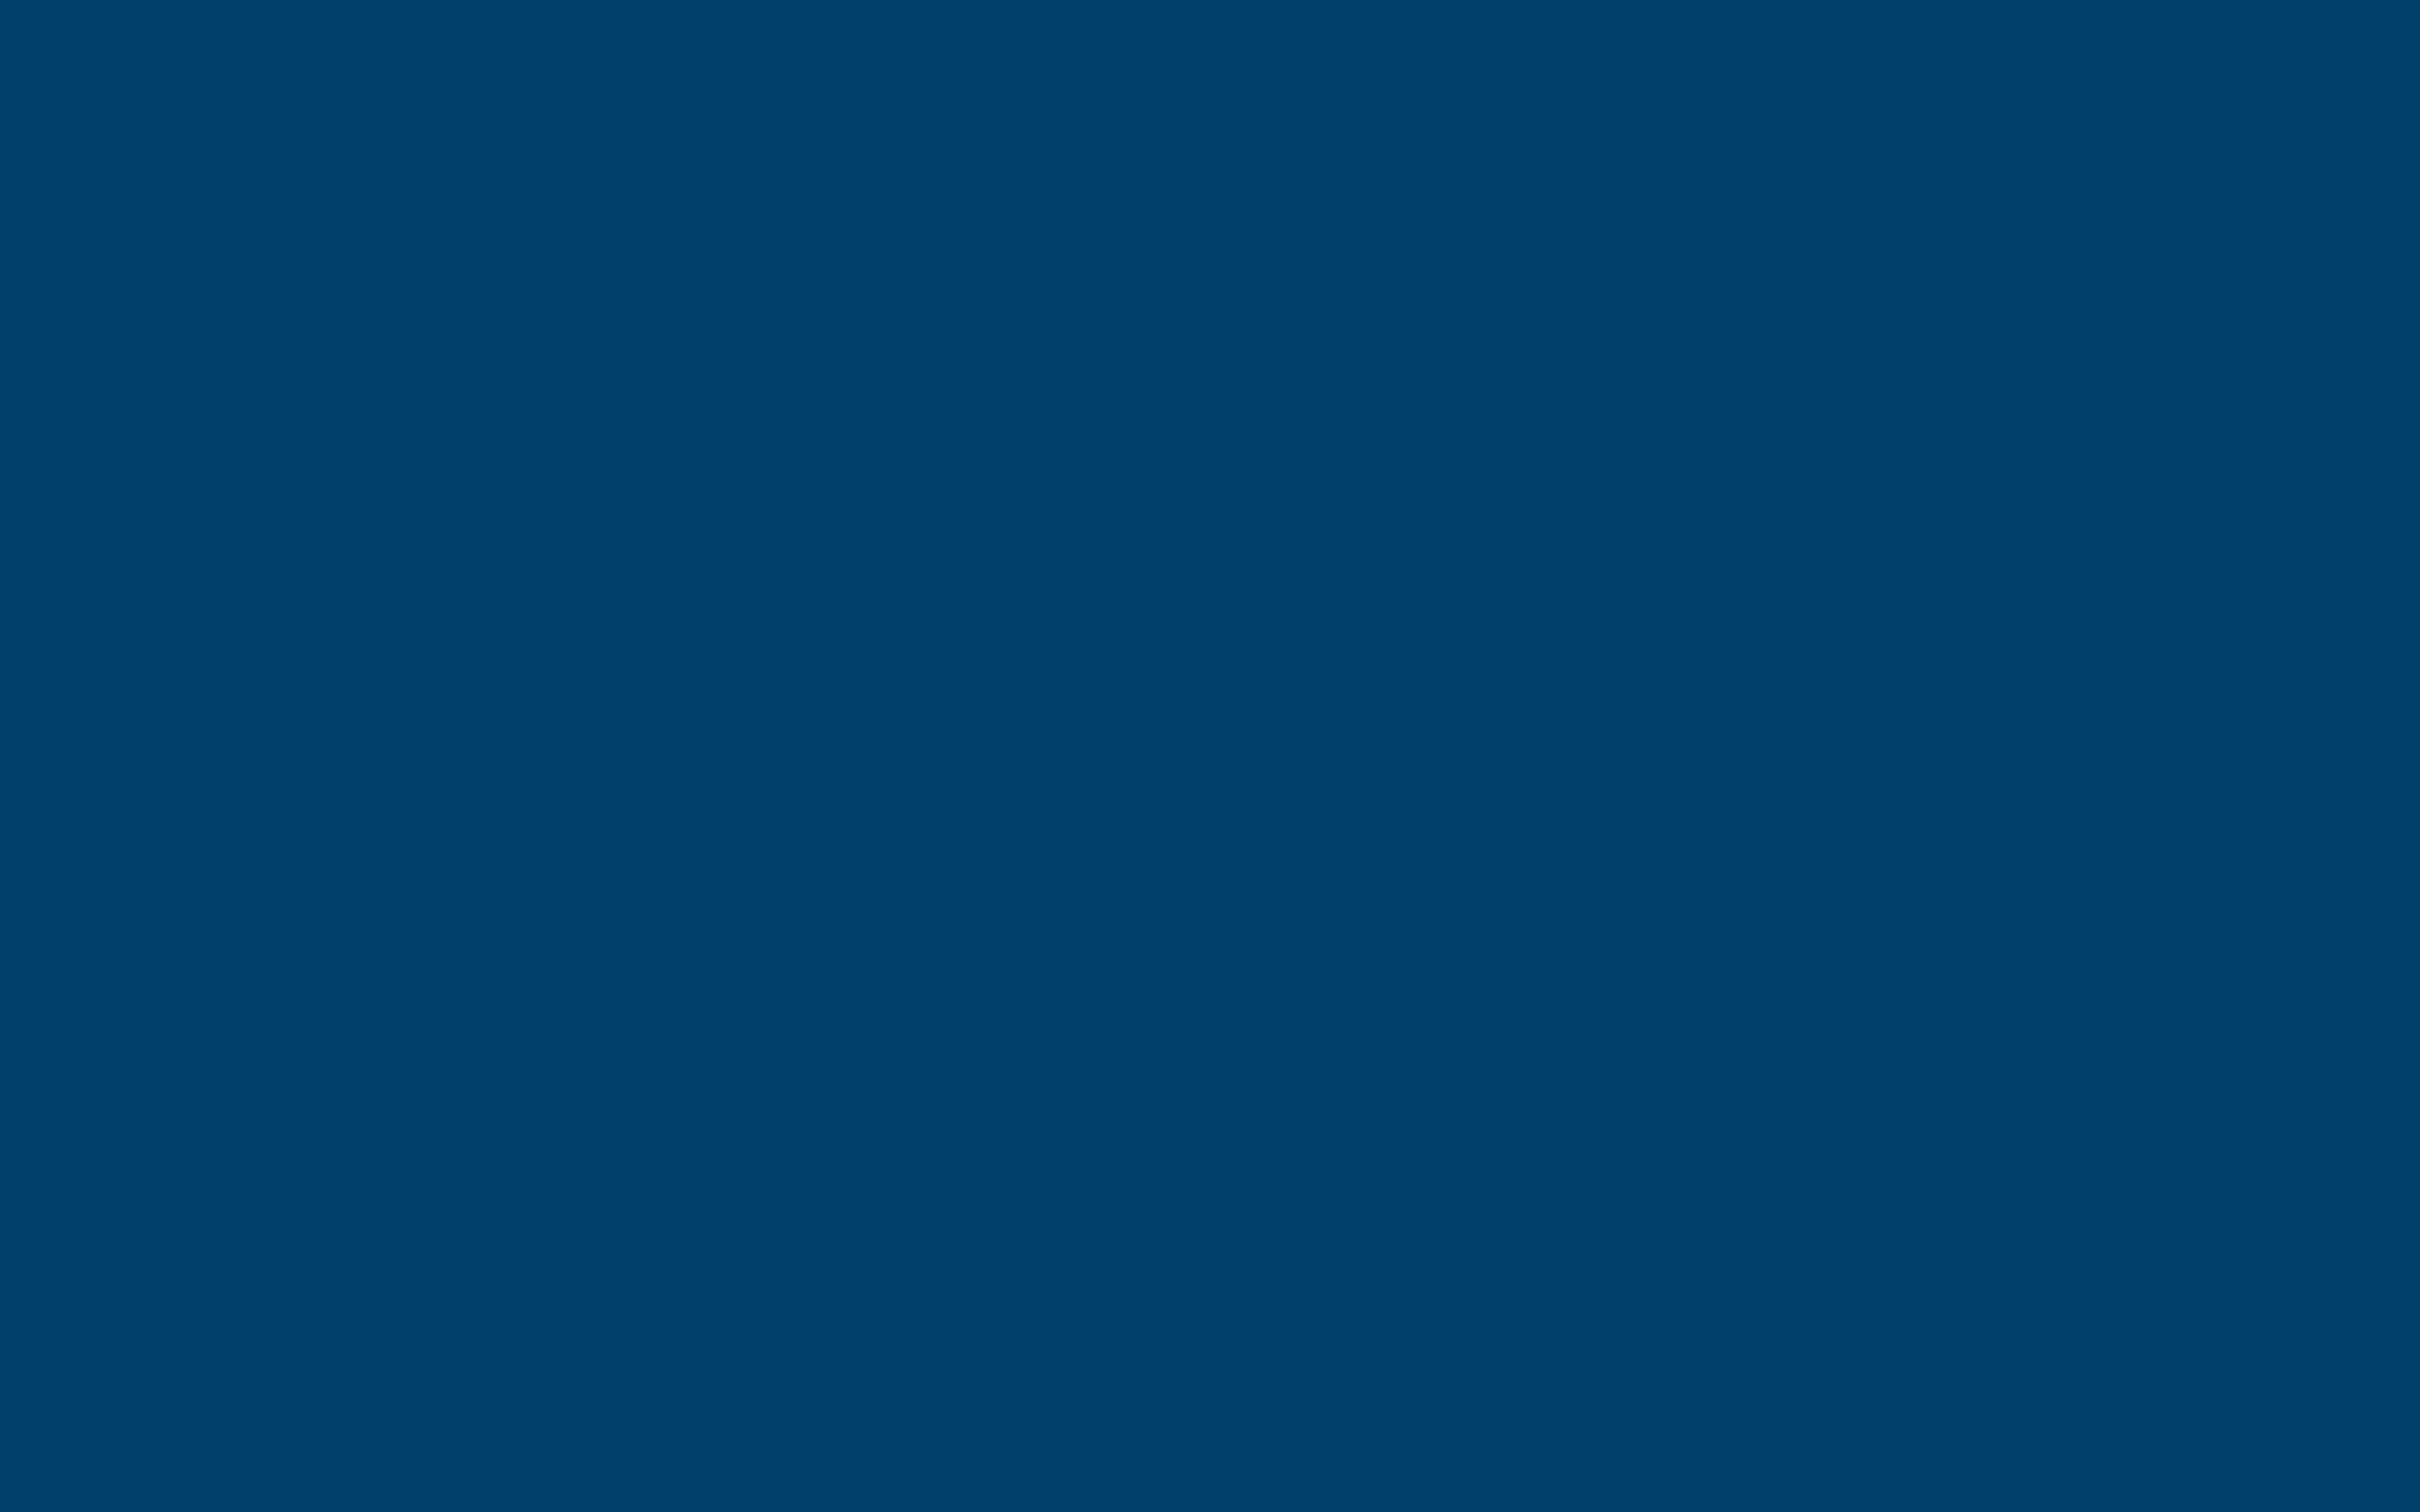 2880x1800 Dark Imperial Blue Solid Color Background